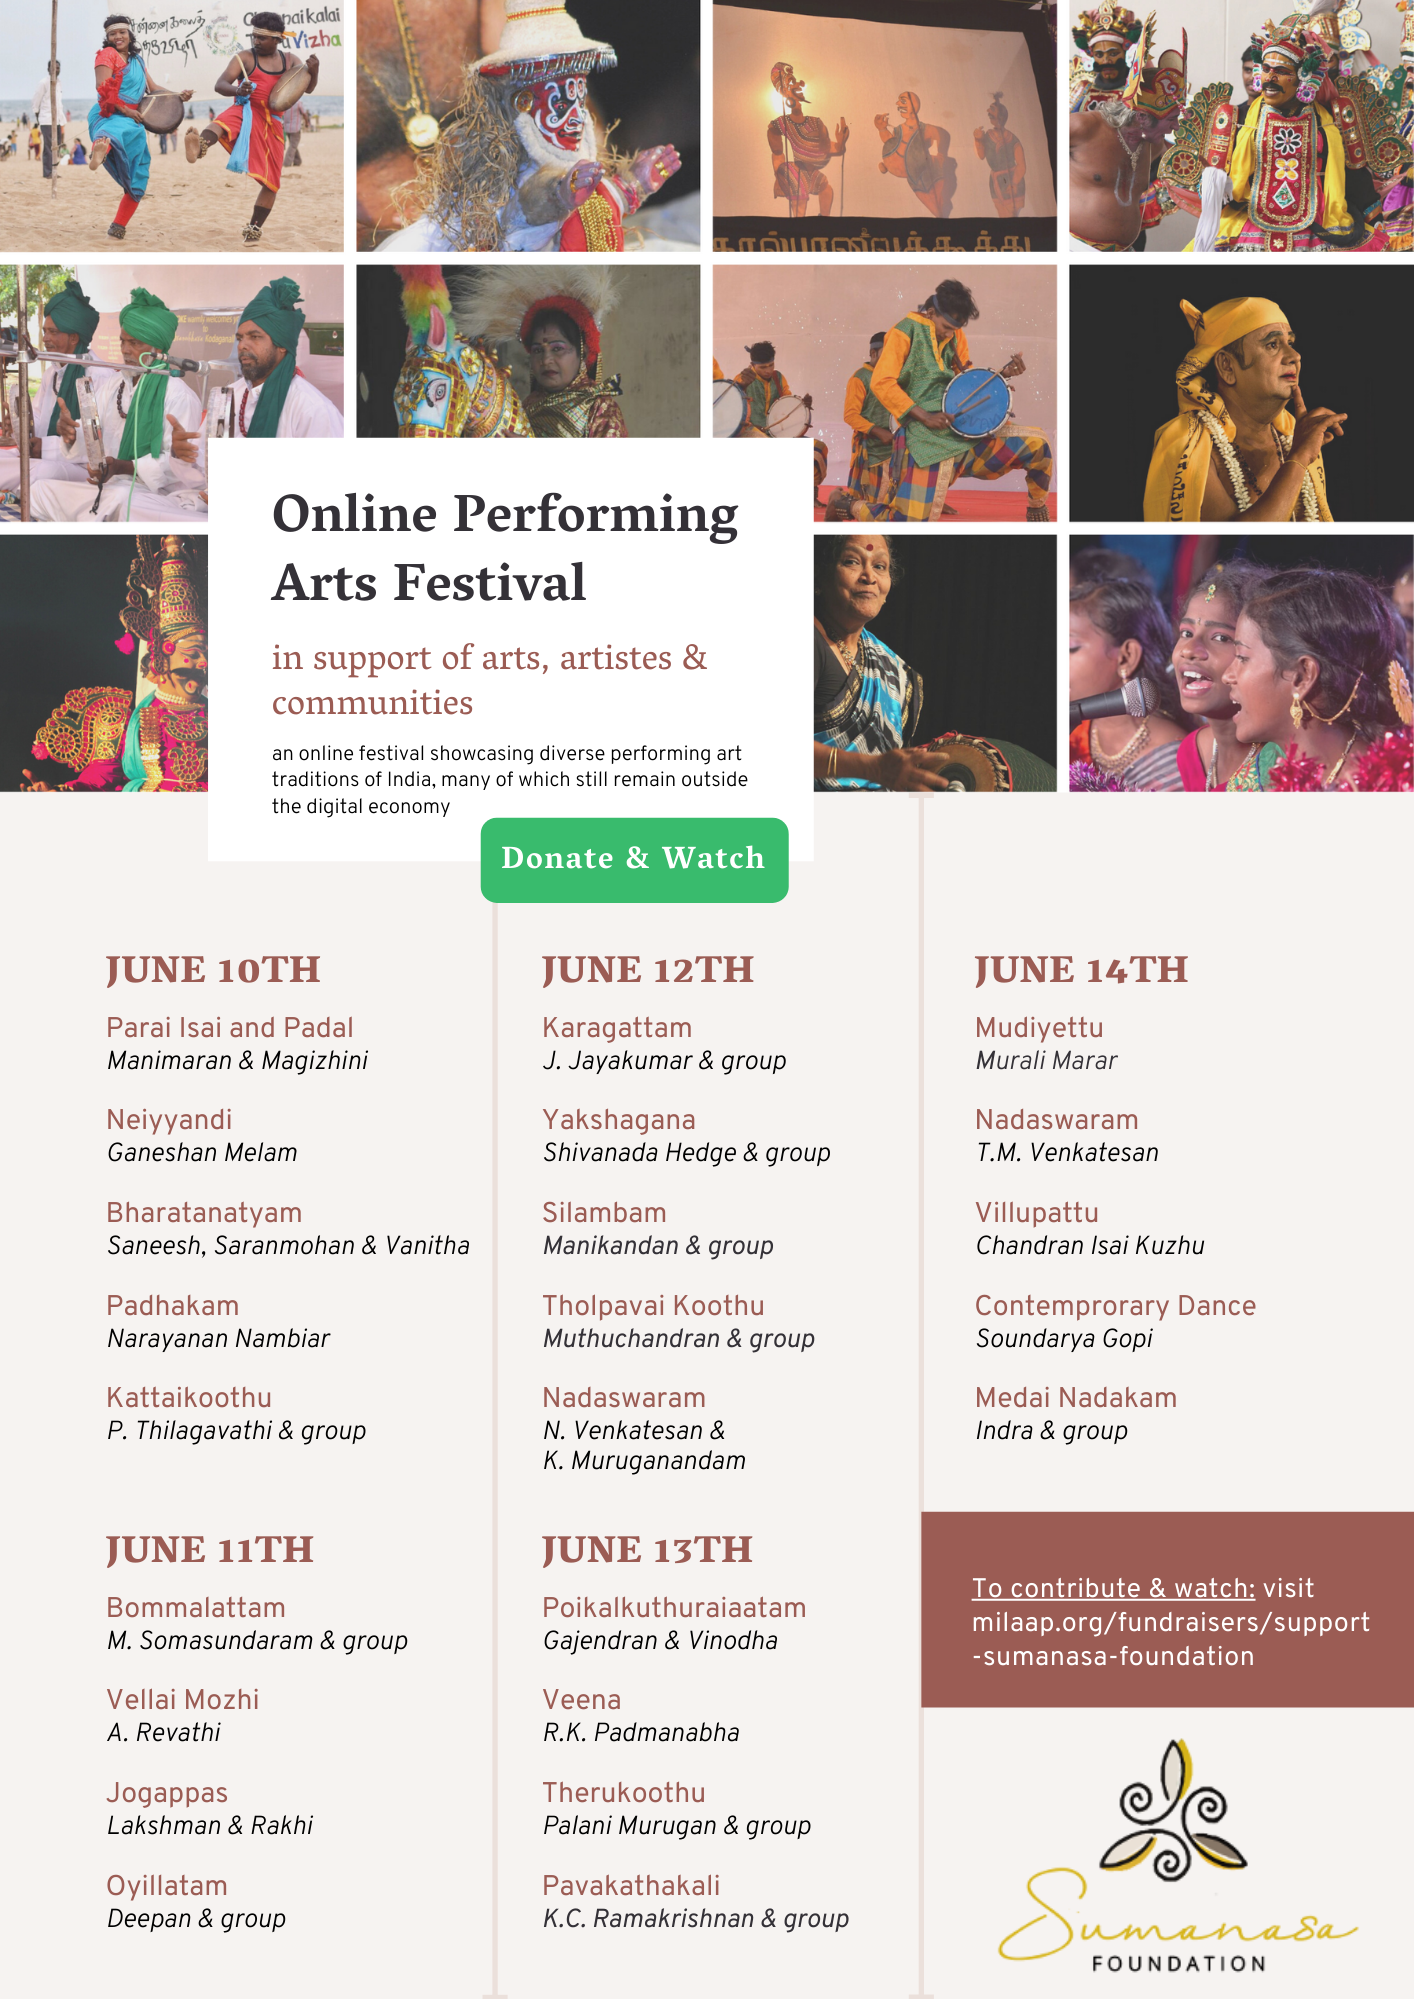 An Online Performing Arts Festival – from Sumanasa Foundation